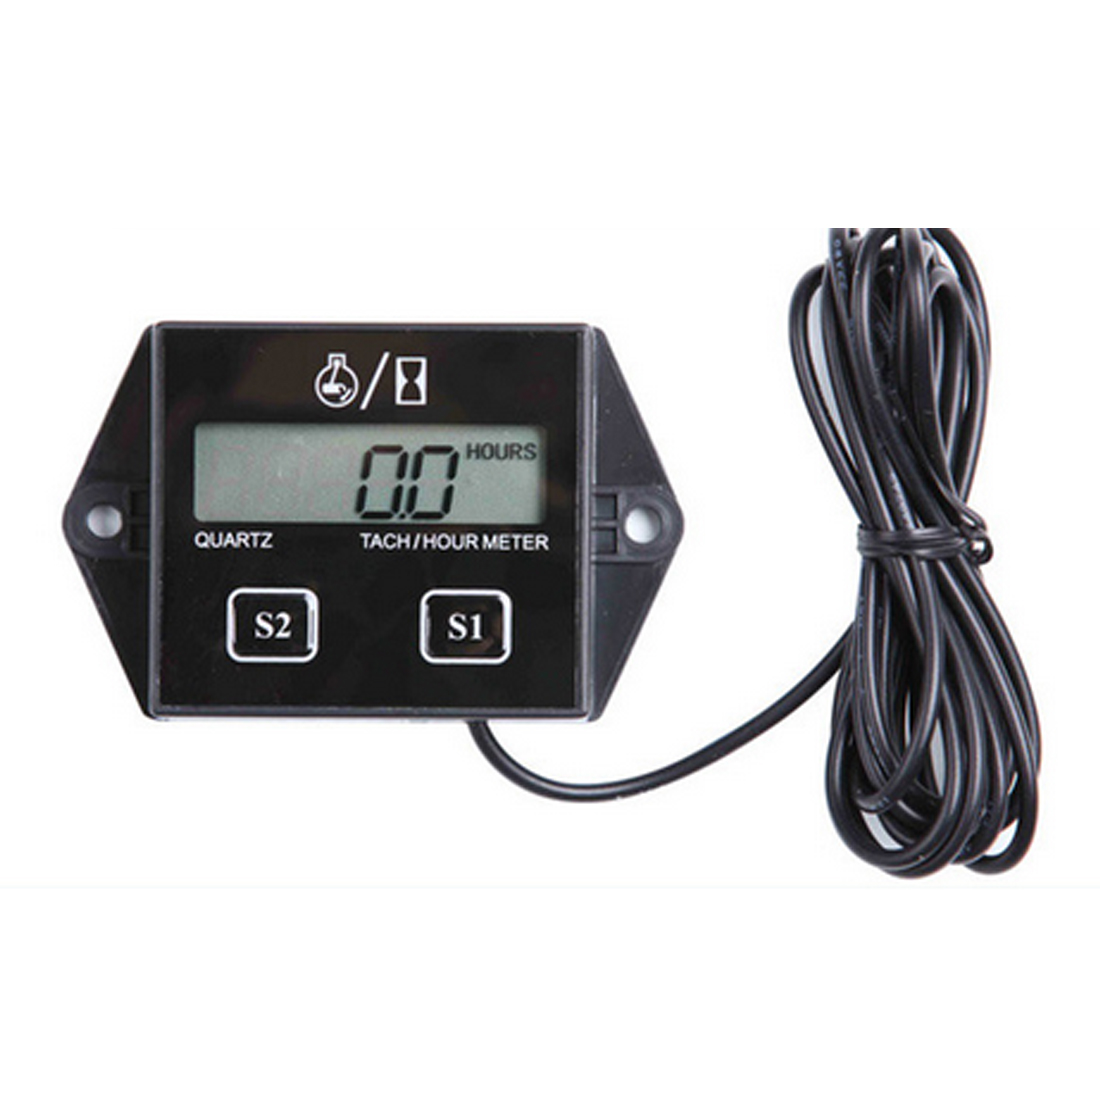 1Pc Waterproof Digital Motor Timers Hour Meter Tachometer Gauge Engine LCD Display For Moto Marine Boat Motor Stroke Engine Car image